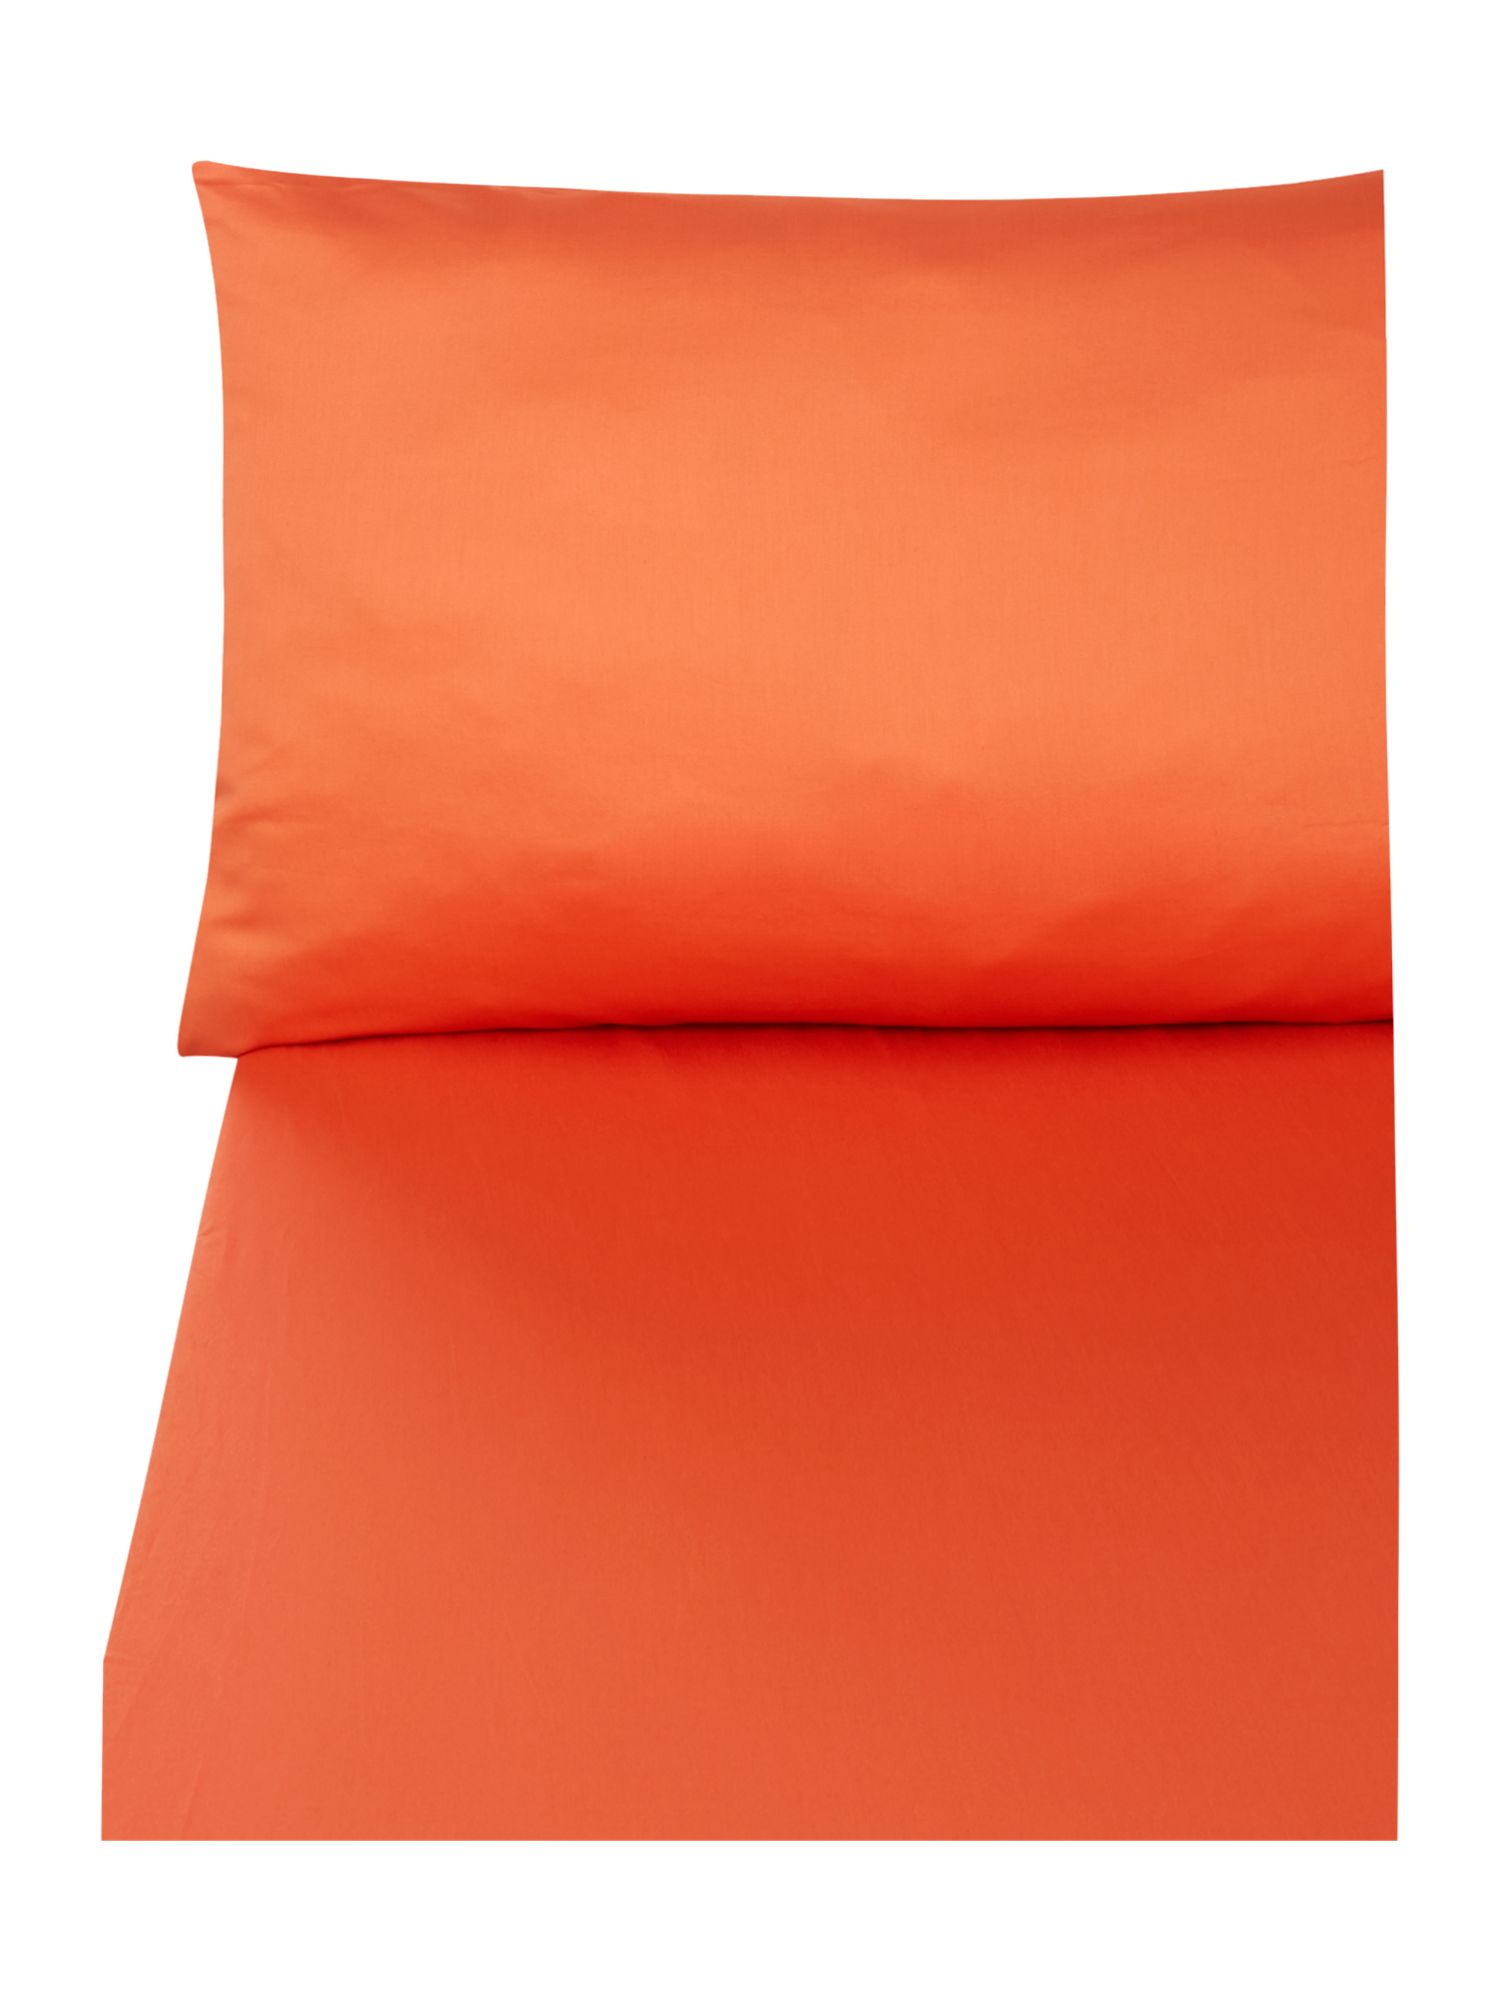 D&J 300 thread orange bedding range